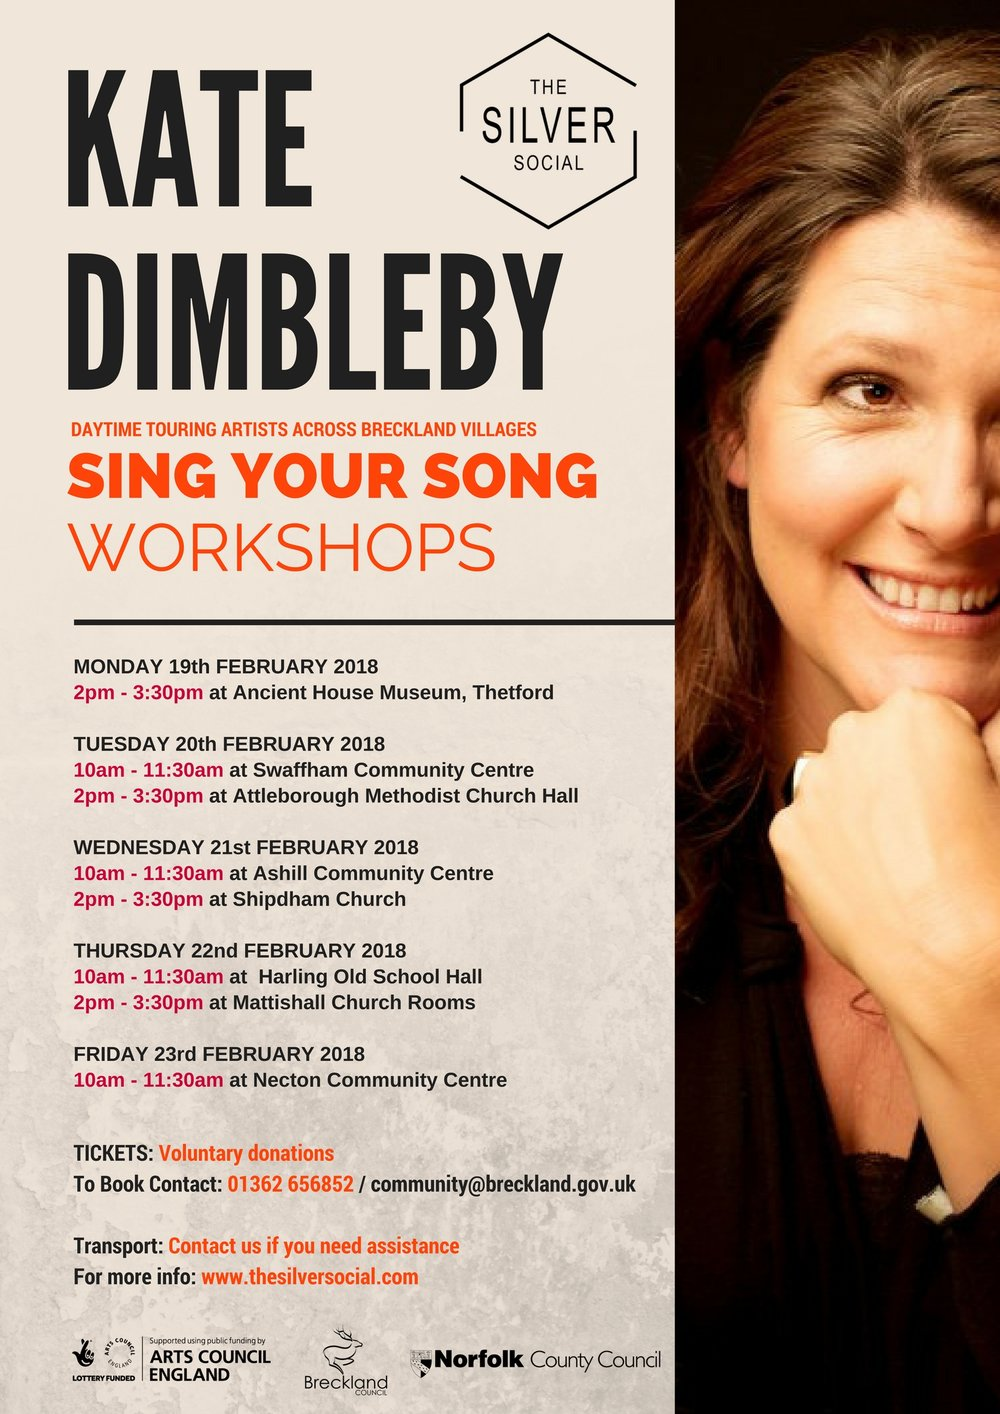 Kate Dimbleby Village Poster (front).jpg